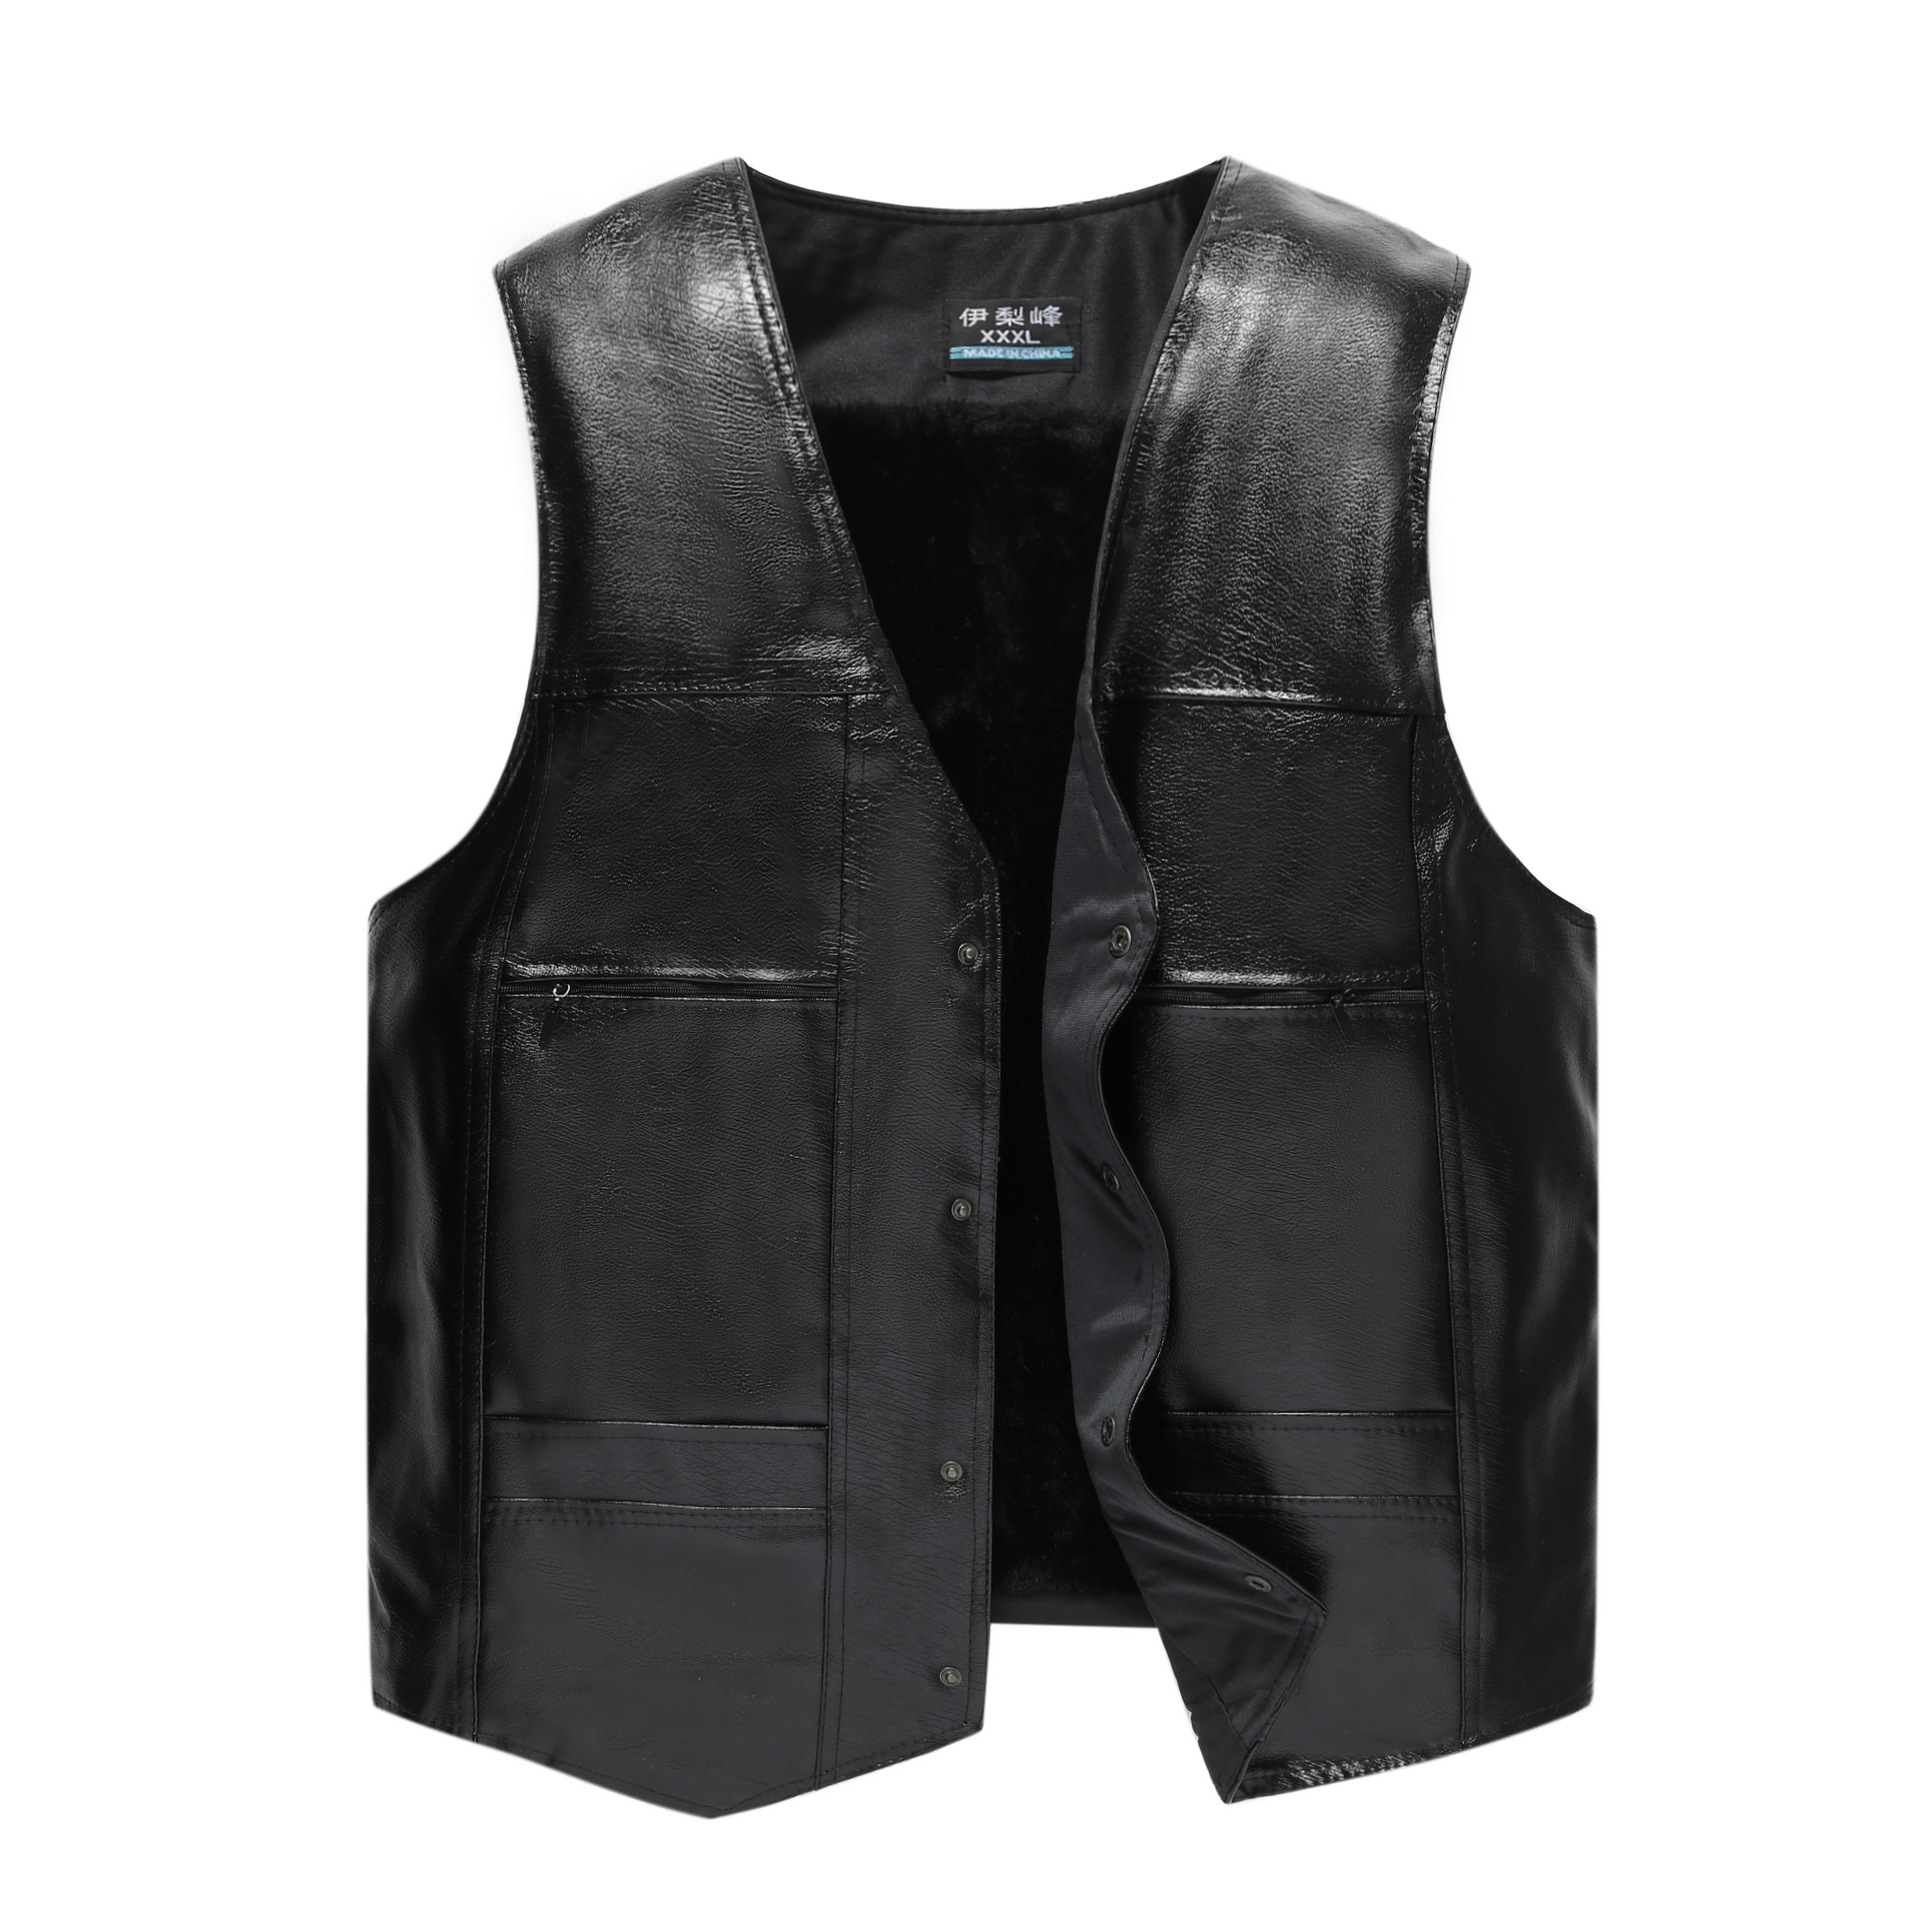 HOO 2020 More Men's PU Leather Vest Fashion V-neck Warm Vest